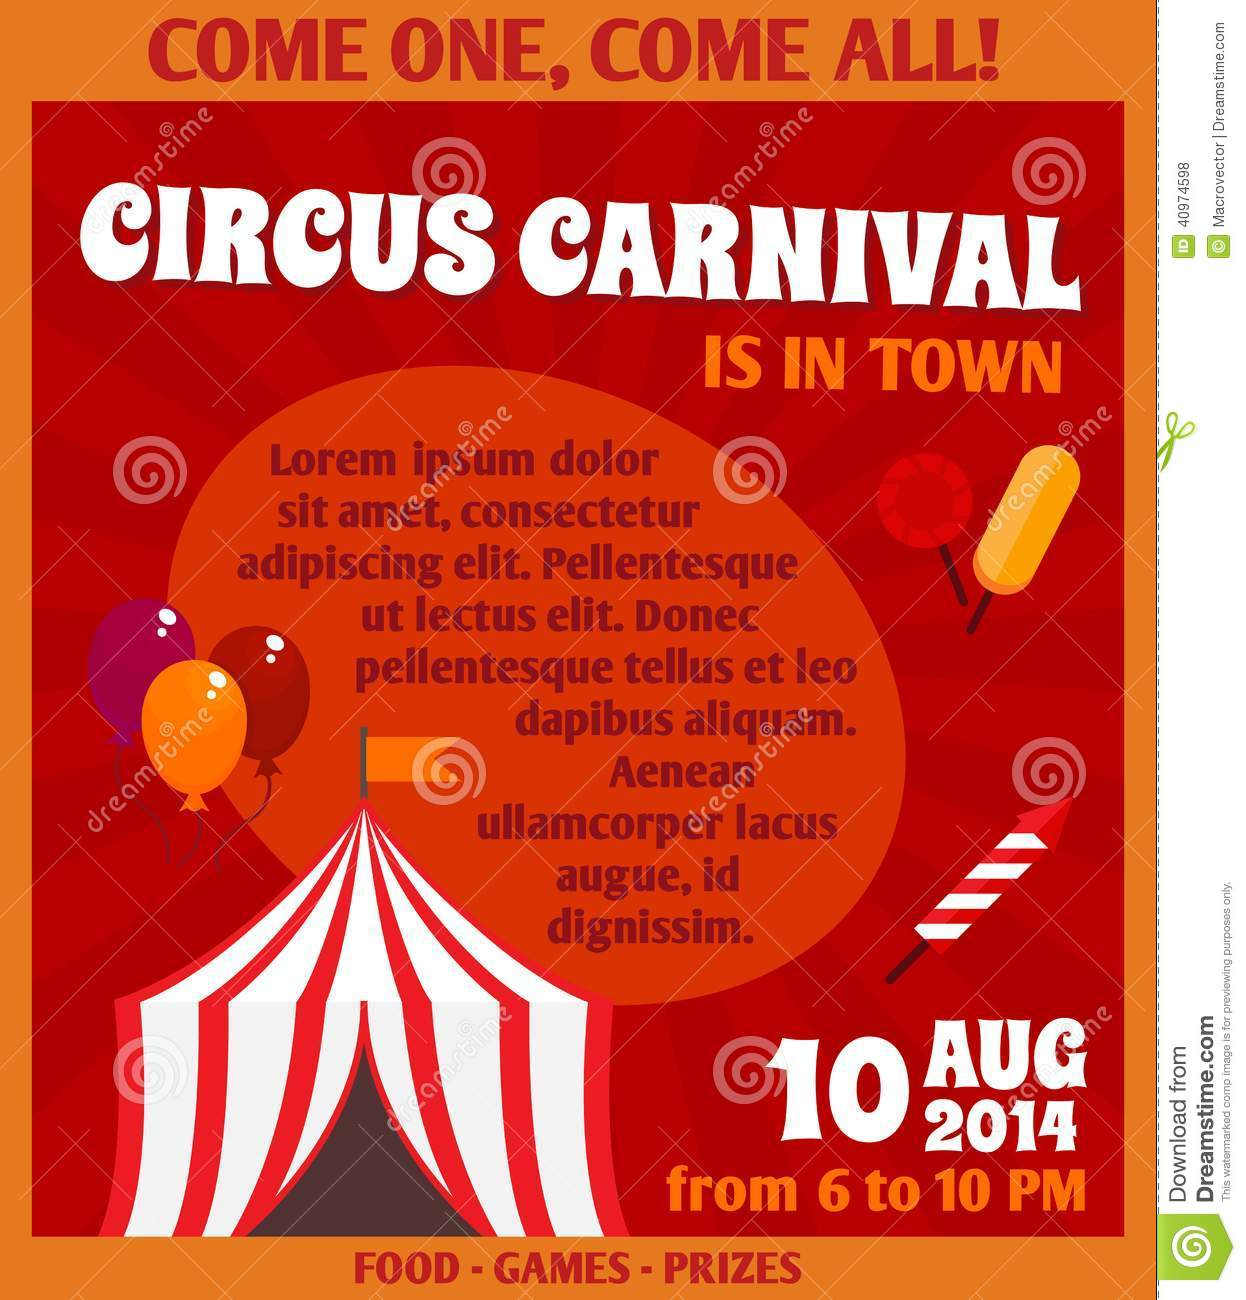 Circus advertising poster stock vector. Illustration of ...